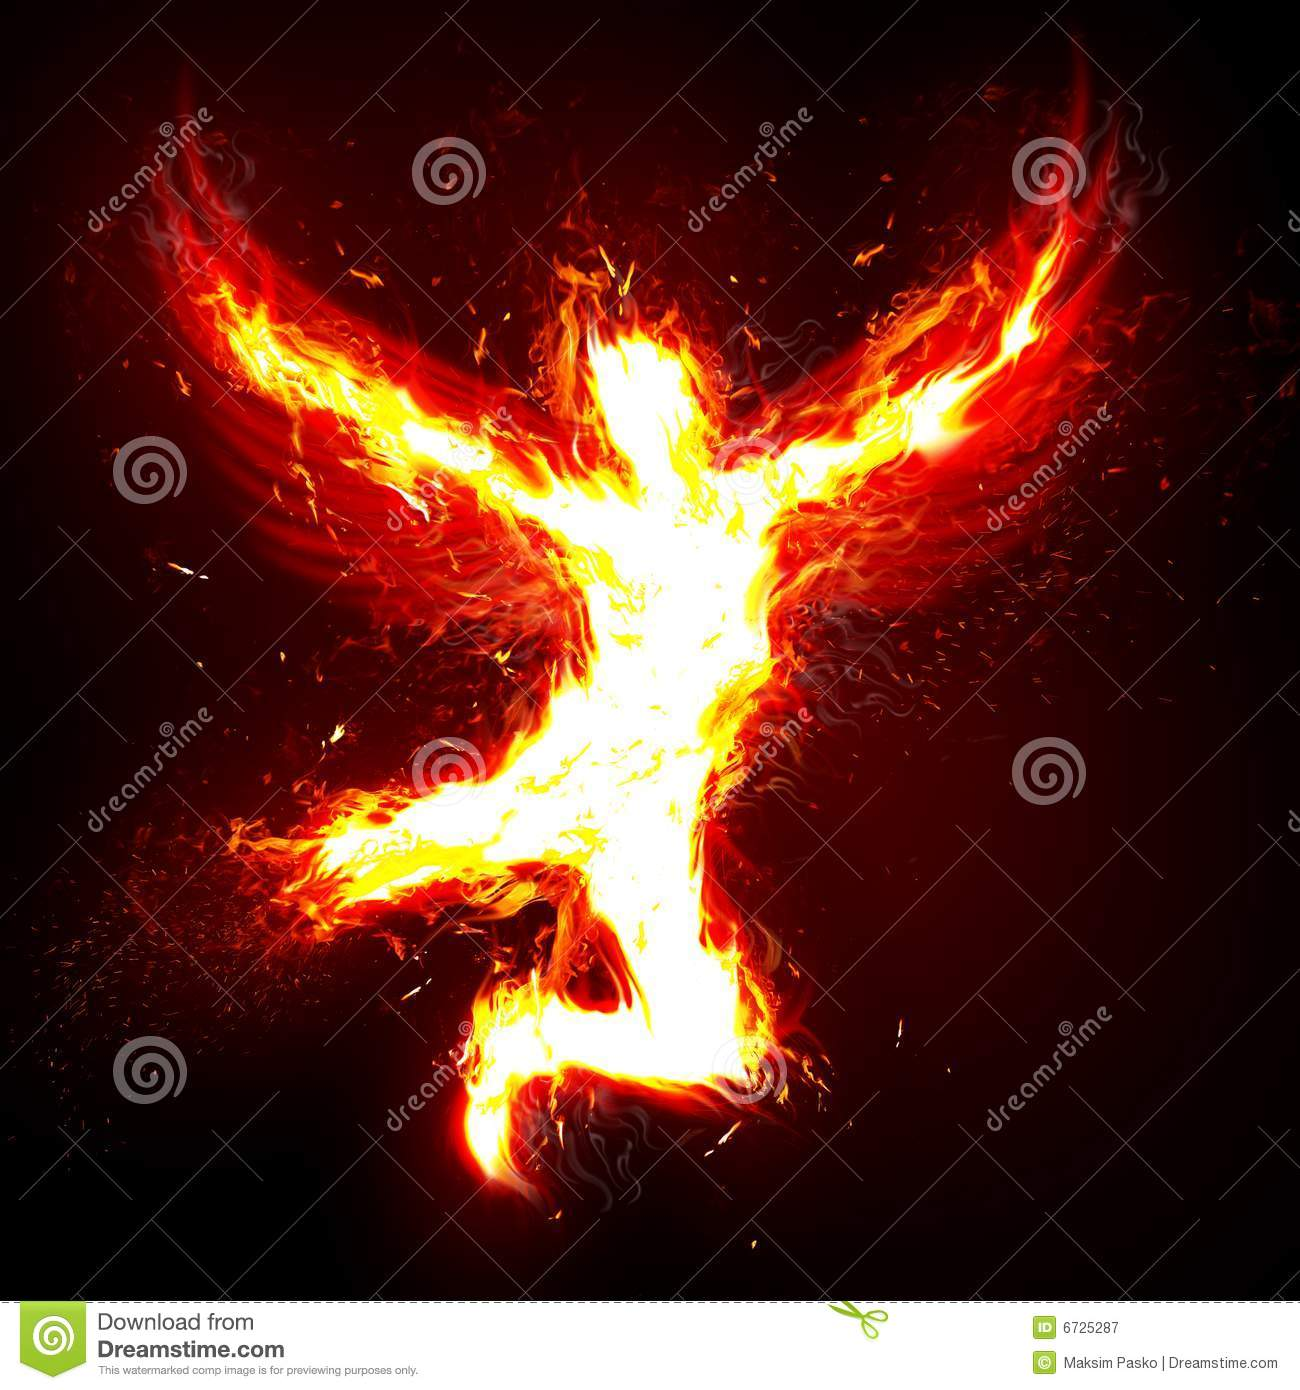 ... background with a fantasy theme showing a man with wings made of fire